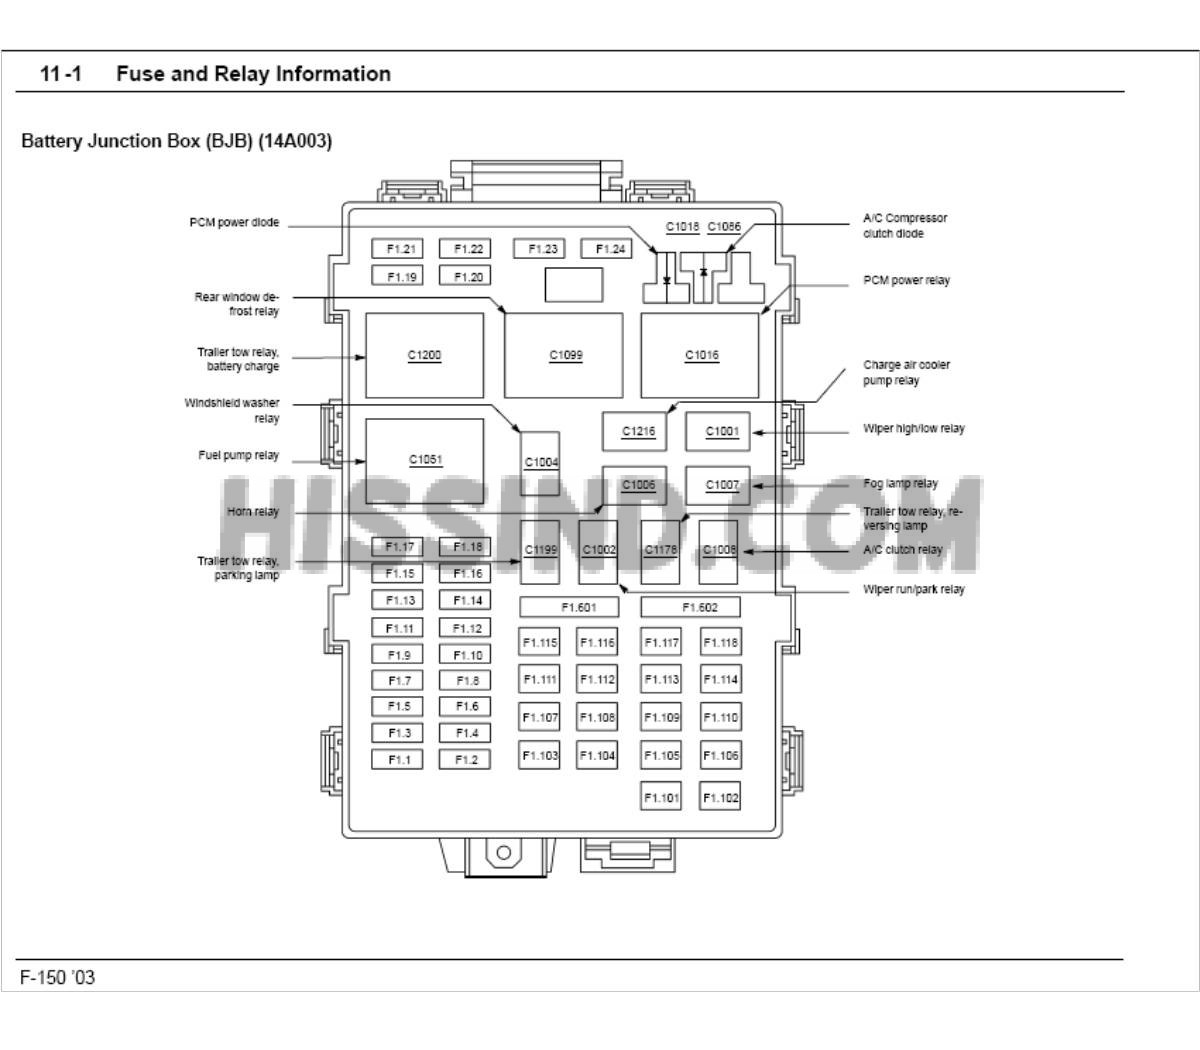 2000 Ford F150 Fuse Box Diagram Engine Bay 99 Dash